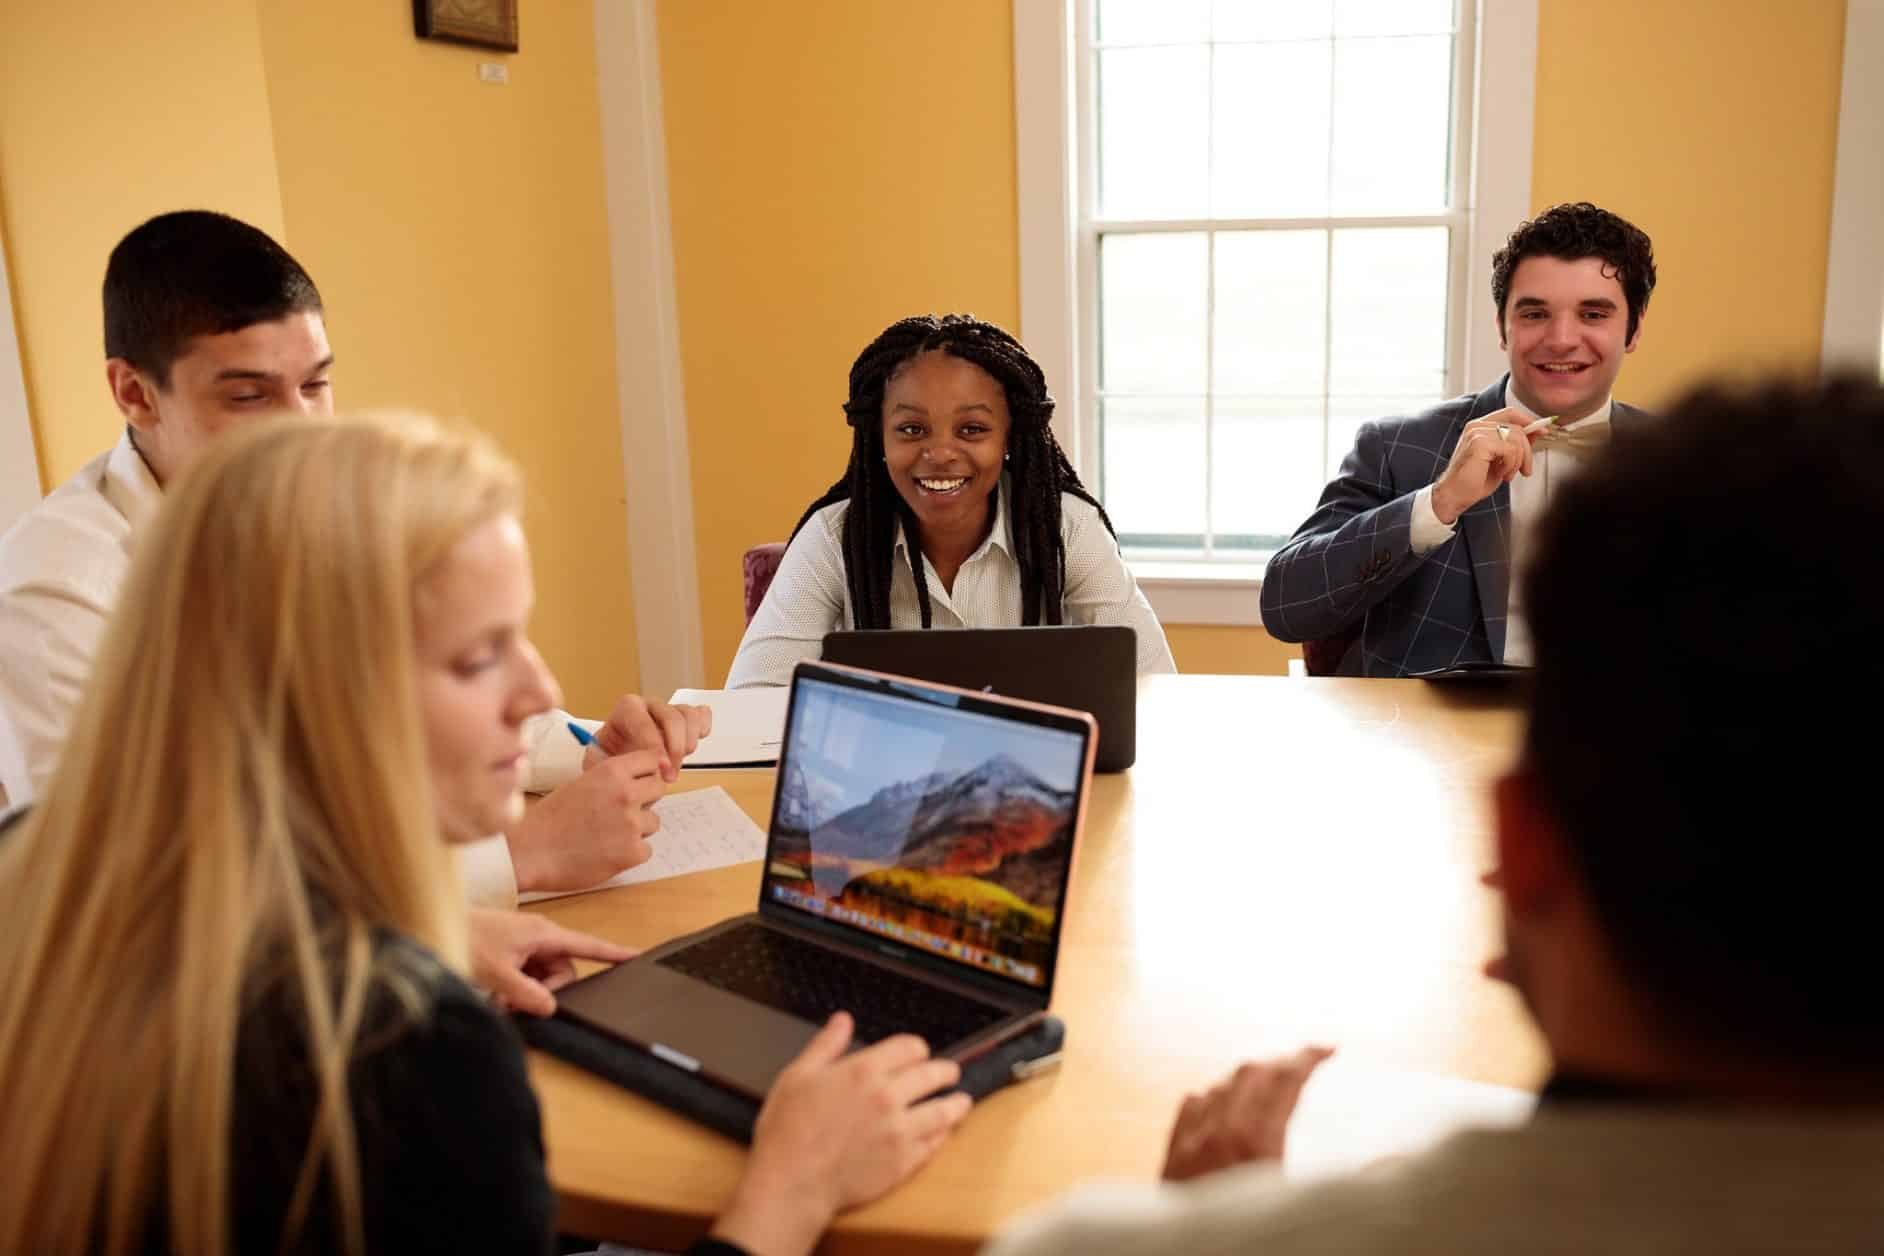 Female students, male students, conference room, business technology and management, laptops, notes